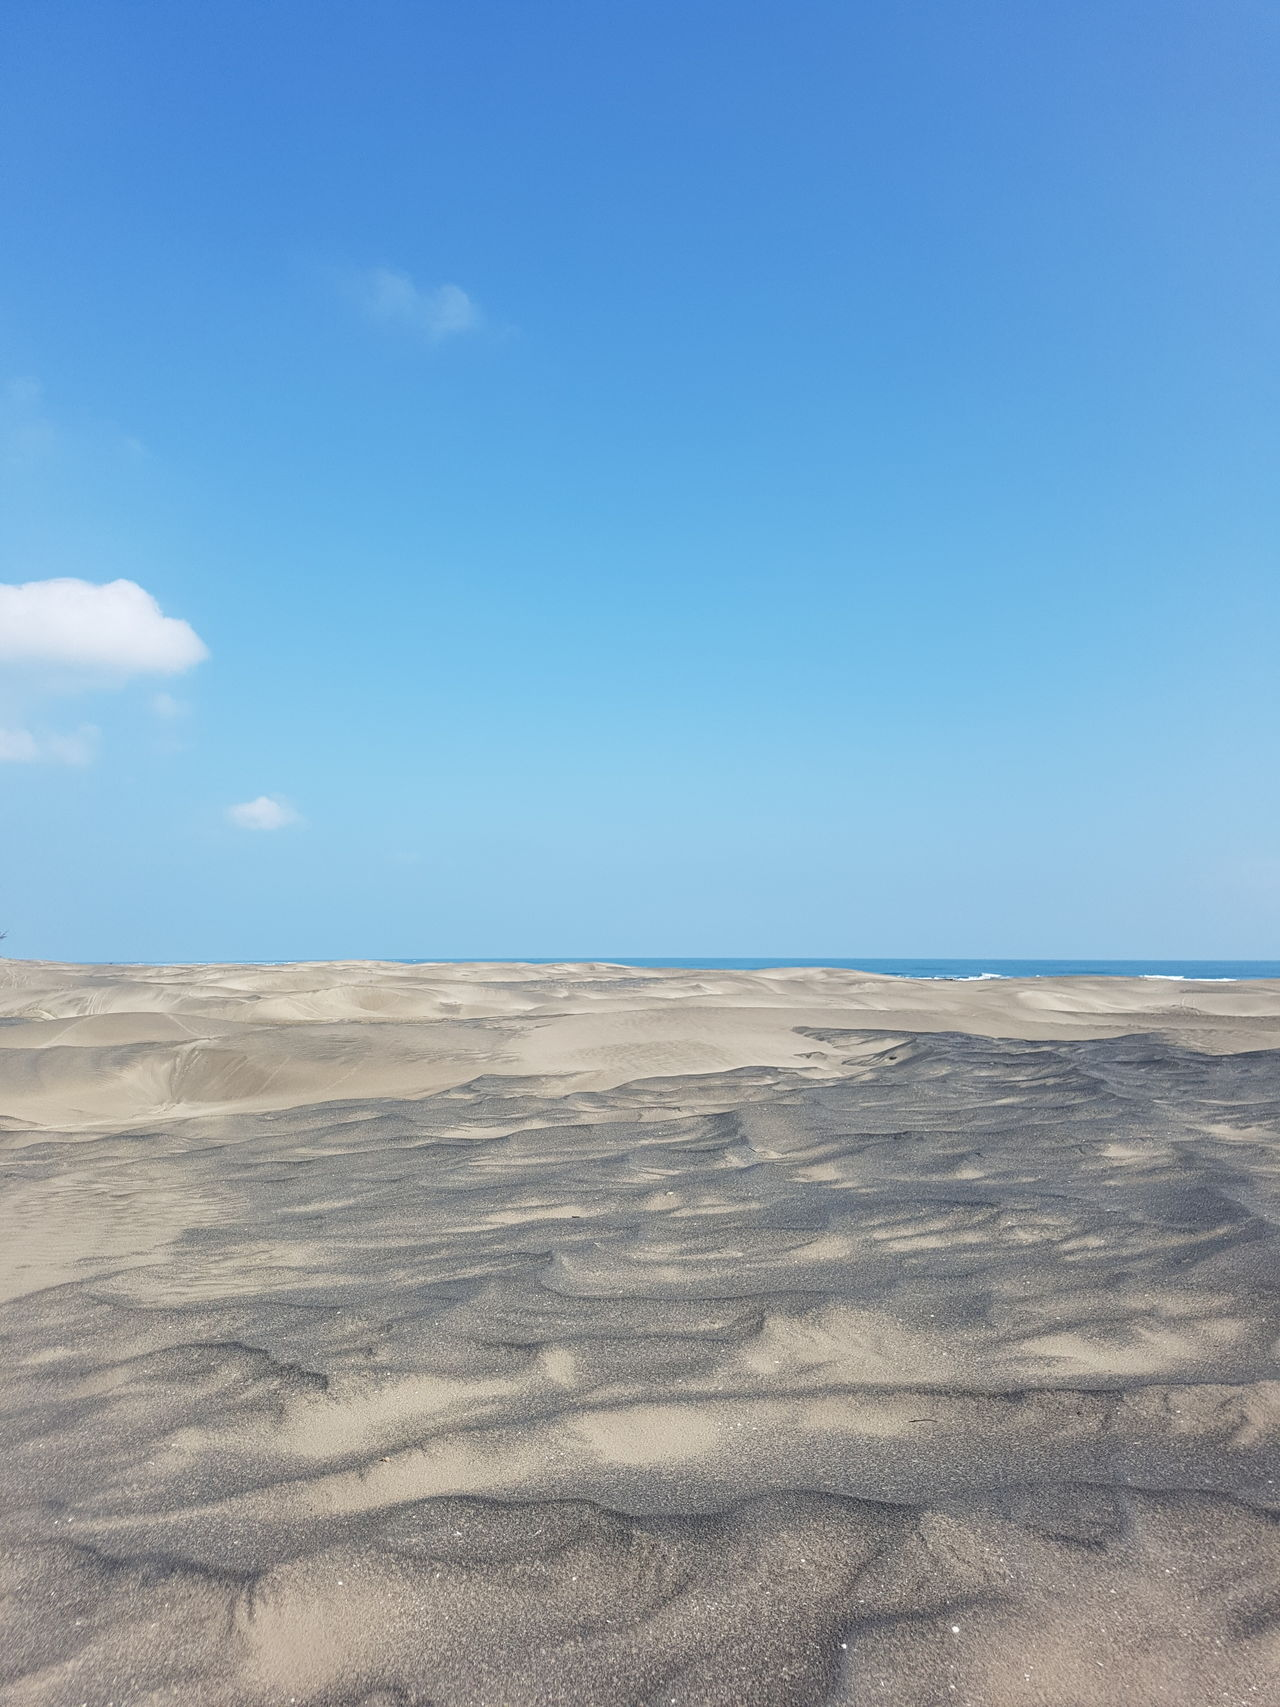 Sand Dune Sand Desert Sky Blue Landscape Tranquility Salt Flat Salt - Mineral No People Nature Beauty In Nature Arid Climate Day Outdoors Scenics